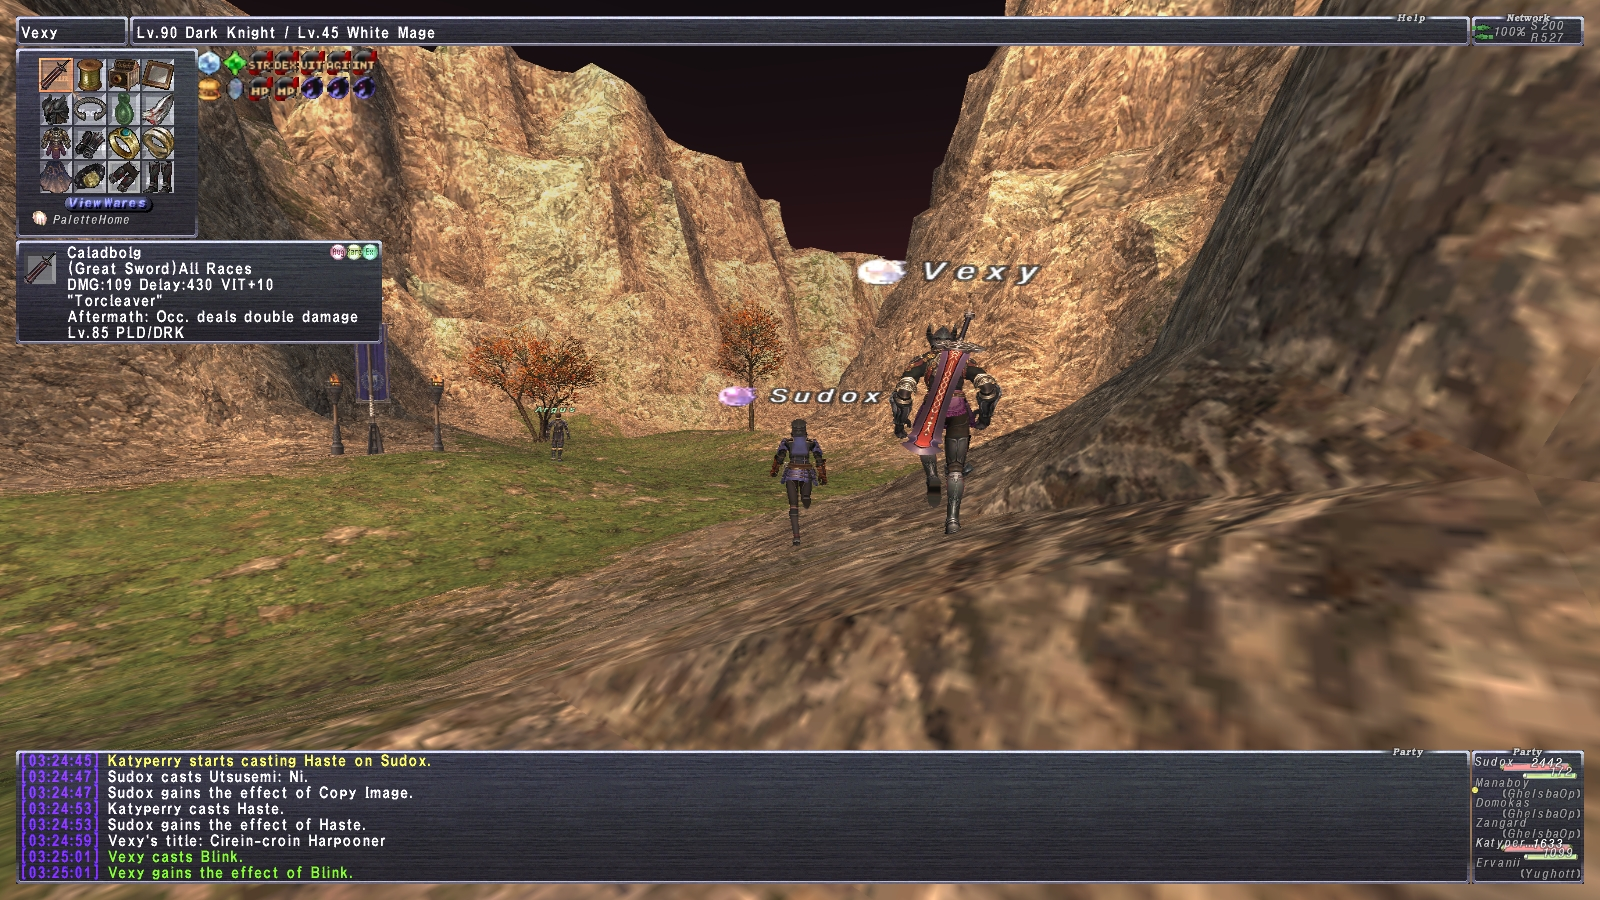 sudox ffxi gear lv78 wear stand cares leech dolls xxii thread literally player make pics renzys gimpleeches long taking shots screen point fast killing presuming lv90s contribute mobs gonna vtit listed mooch damage contribution tier this play gimpconfusedwtf contributions